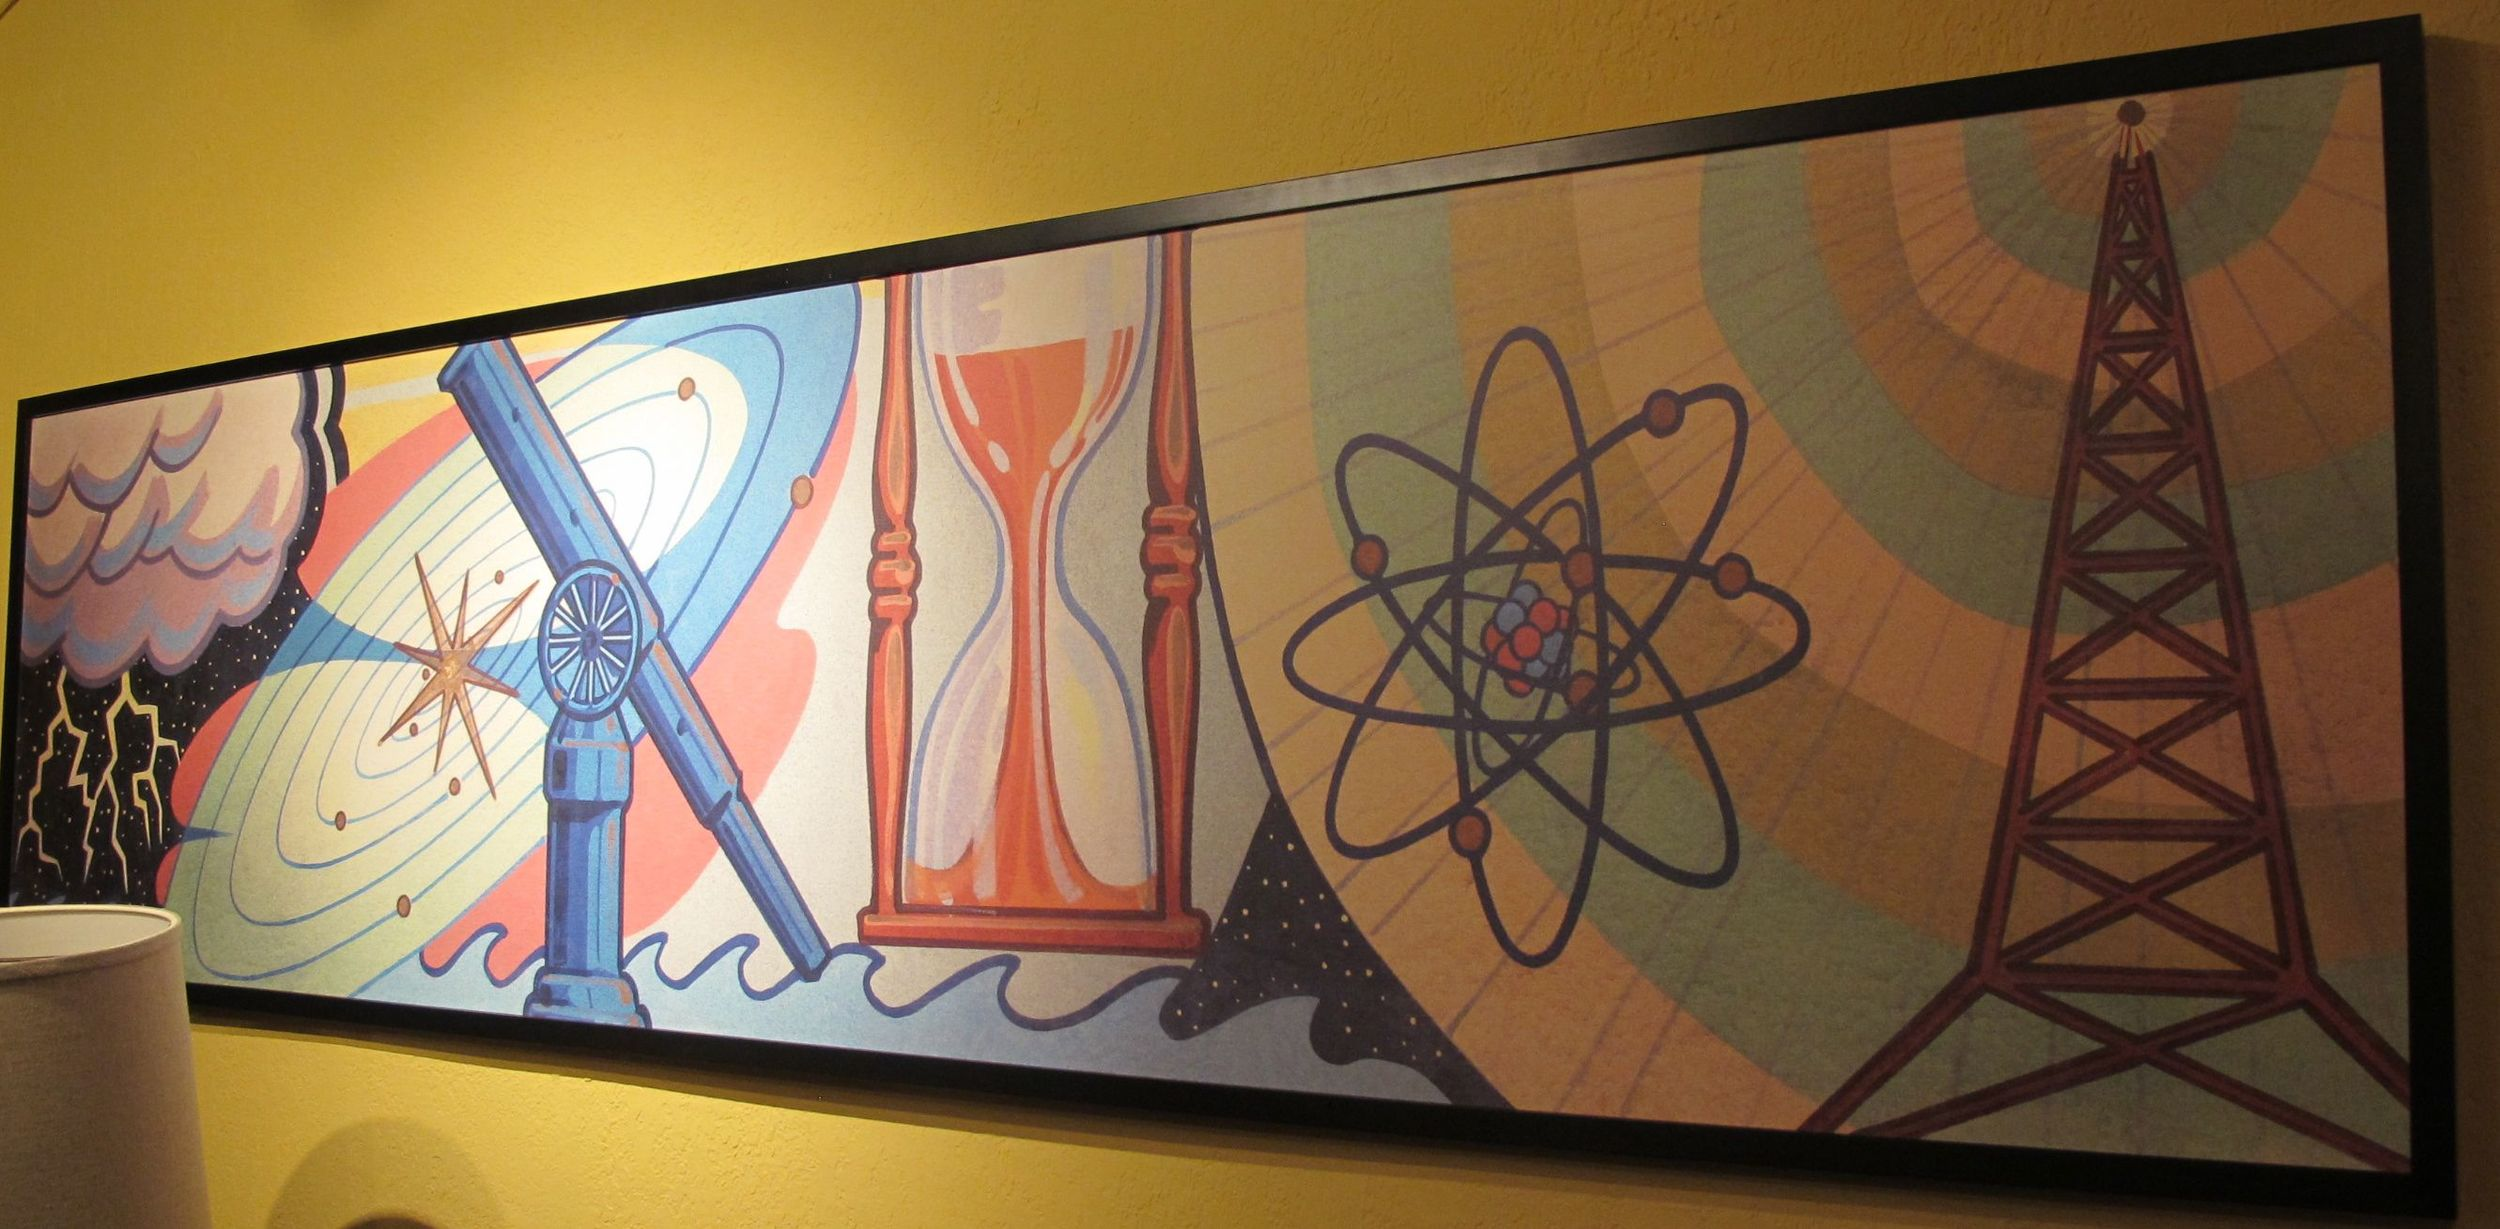 Even the art in our room had a brainy theme.